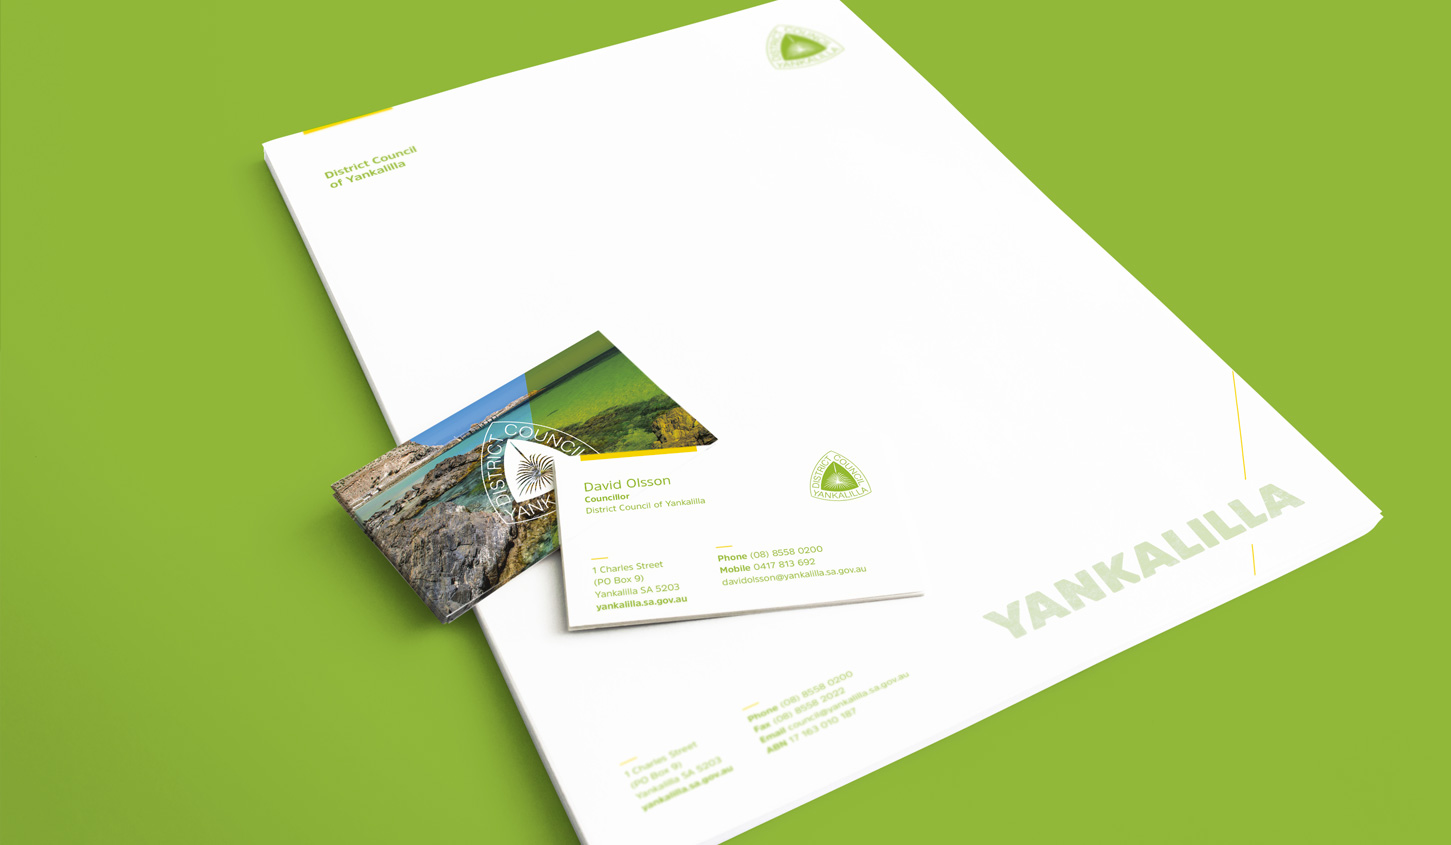 Yankalilla Letterhead Business Cards, designed by Algo Mas